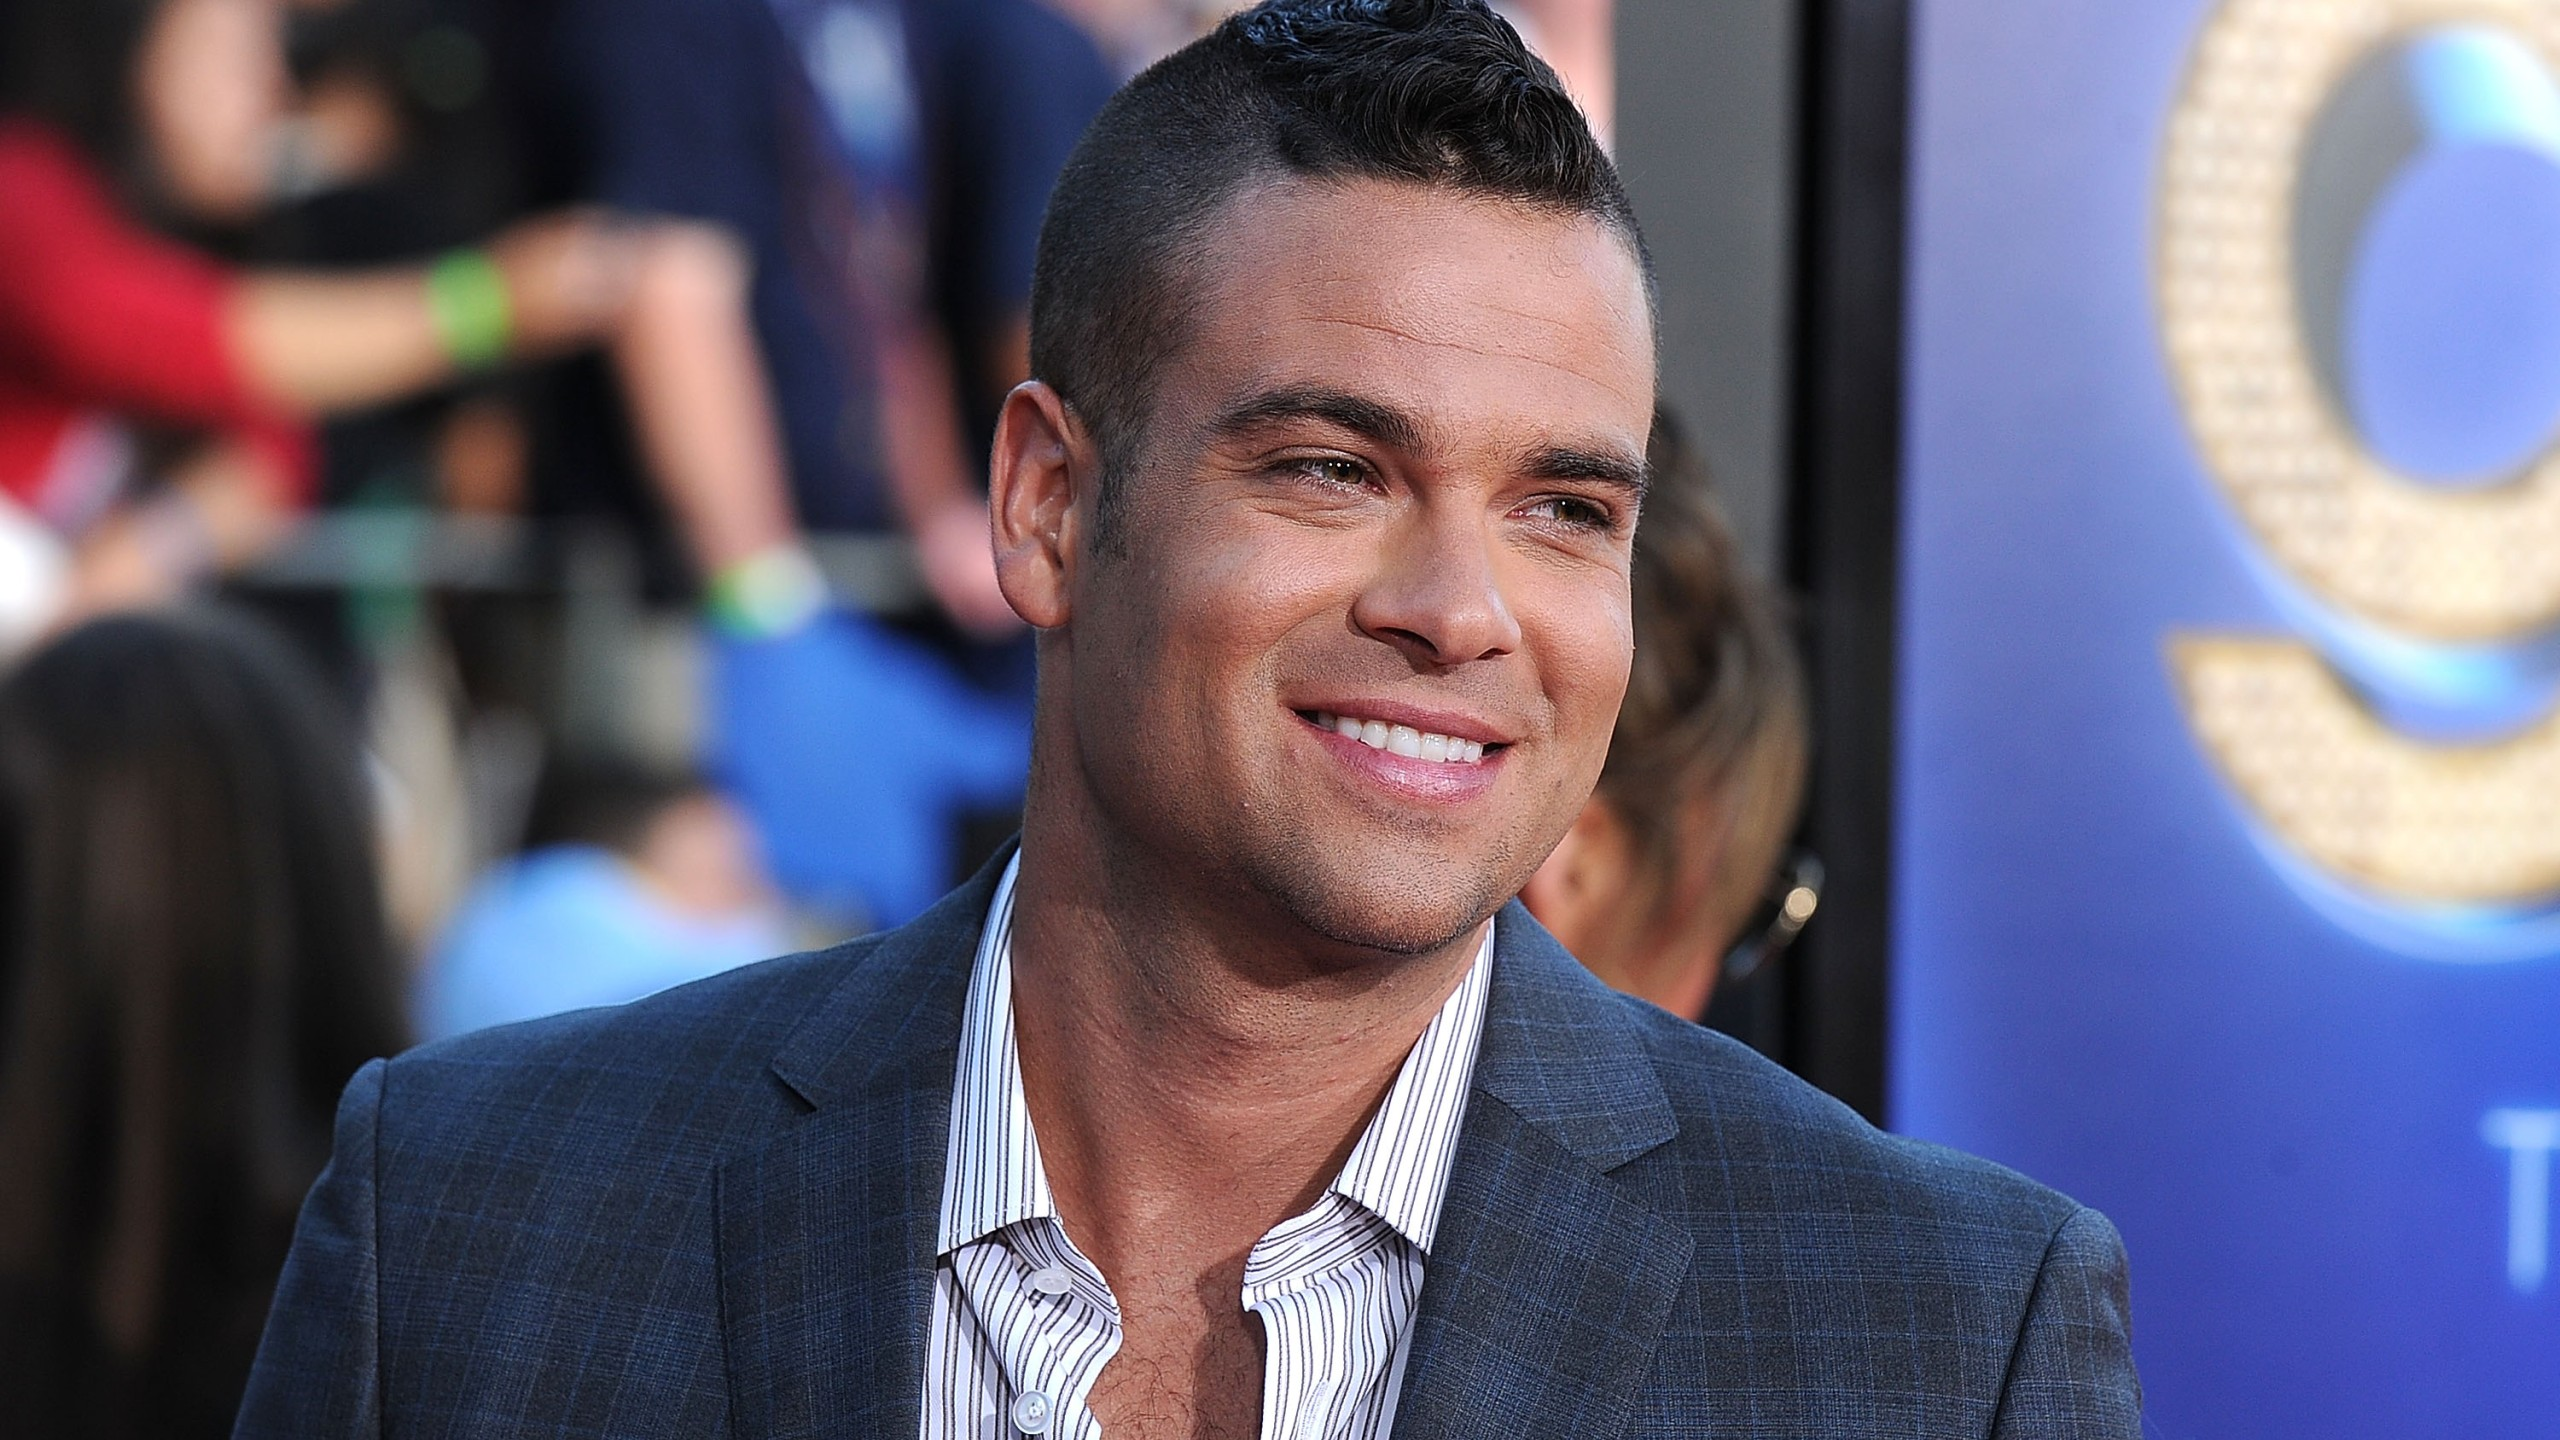 """Actor Mark Salling arrives at the Premiere Of Twentieth Century Fox's """"Glee: The 3D Concert Movie"""" at the Regency Village Theater on August 6, 2011 in Westwood. (Credit: Frazer Harrison/Getty Images)"""